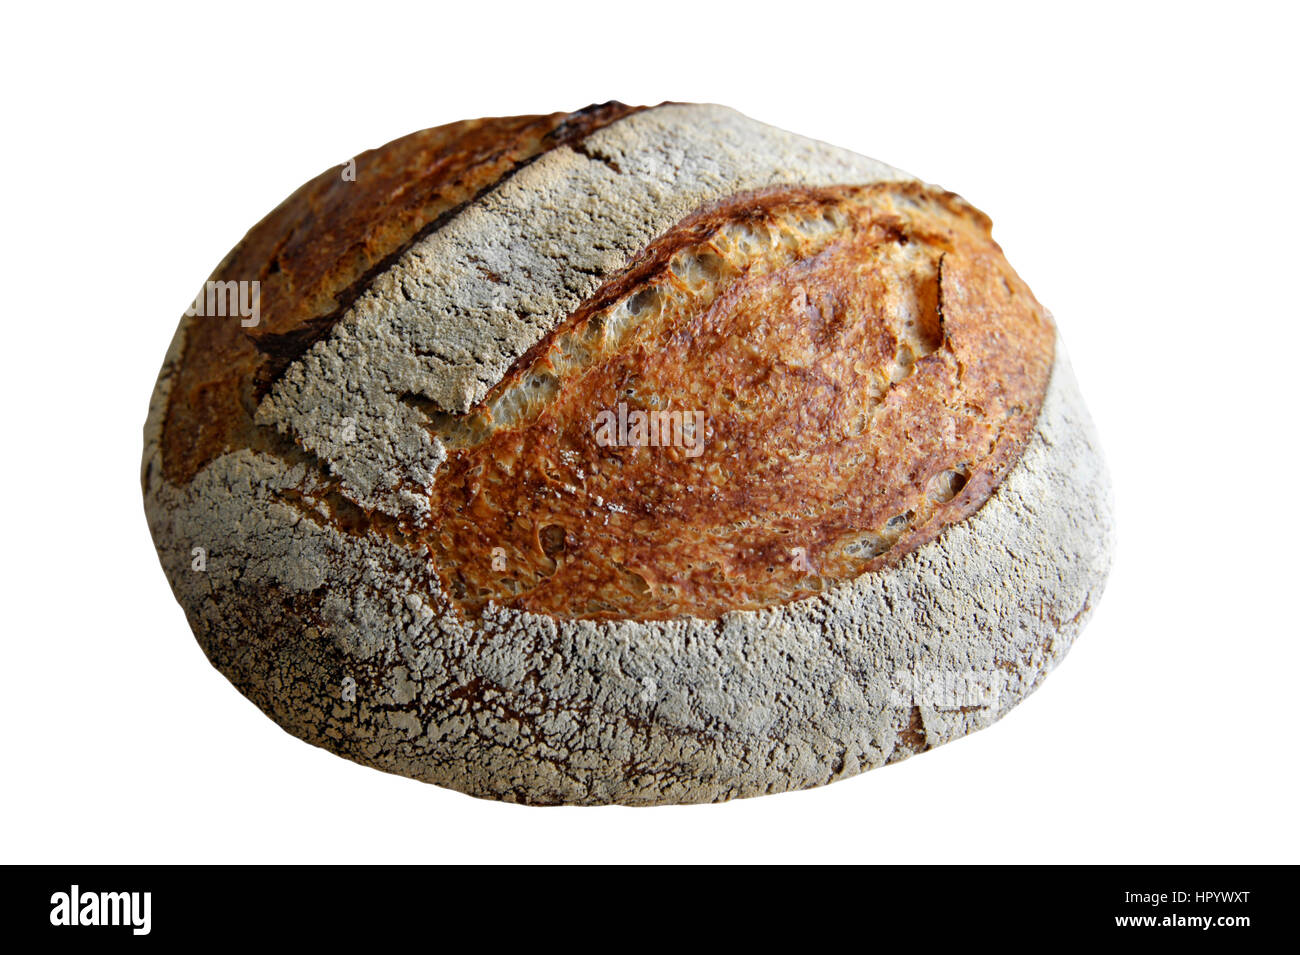 Homemade artisan round white sourdough bread loaf made from natural wild yeast sourdough starter culture. - Stock Image